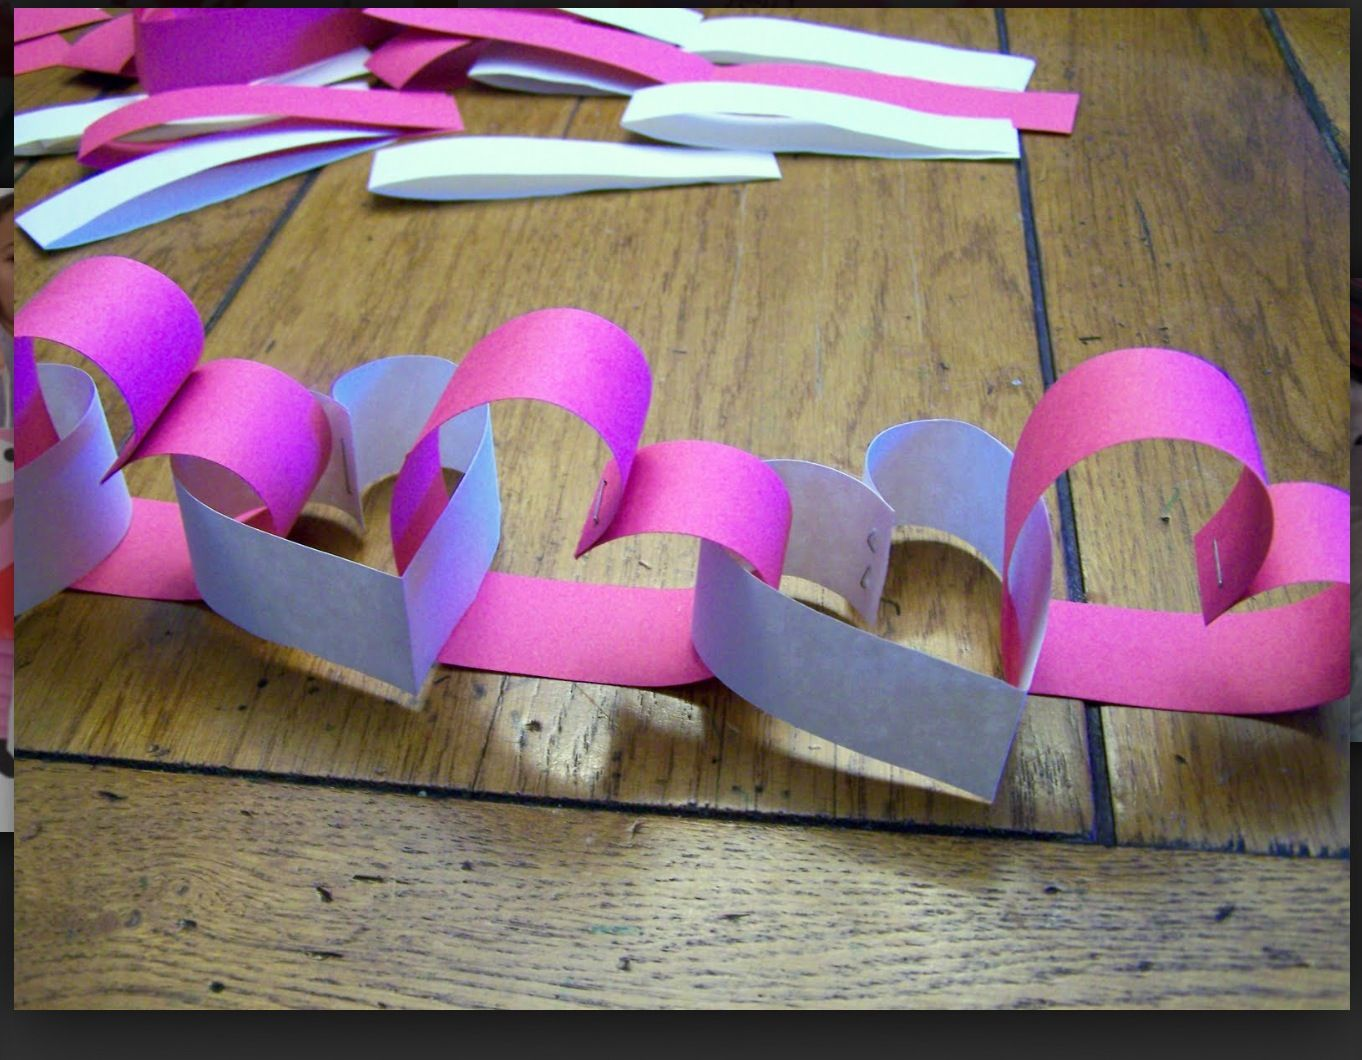 Paper heart chain. Use to demonstrate 70x7 forgiveness. Forgiveness = showing God's love to someone else, even if they don't deserve it.